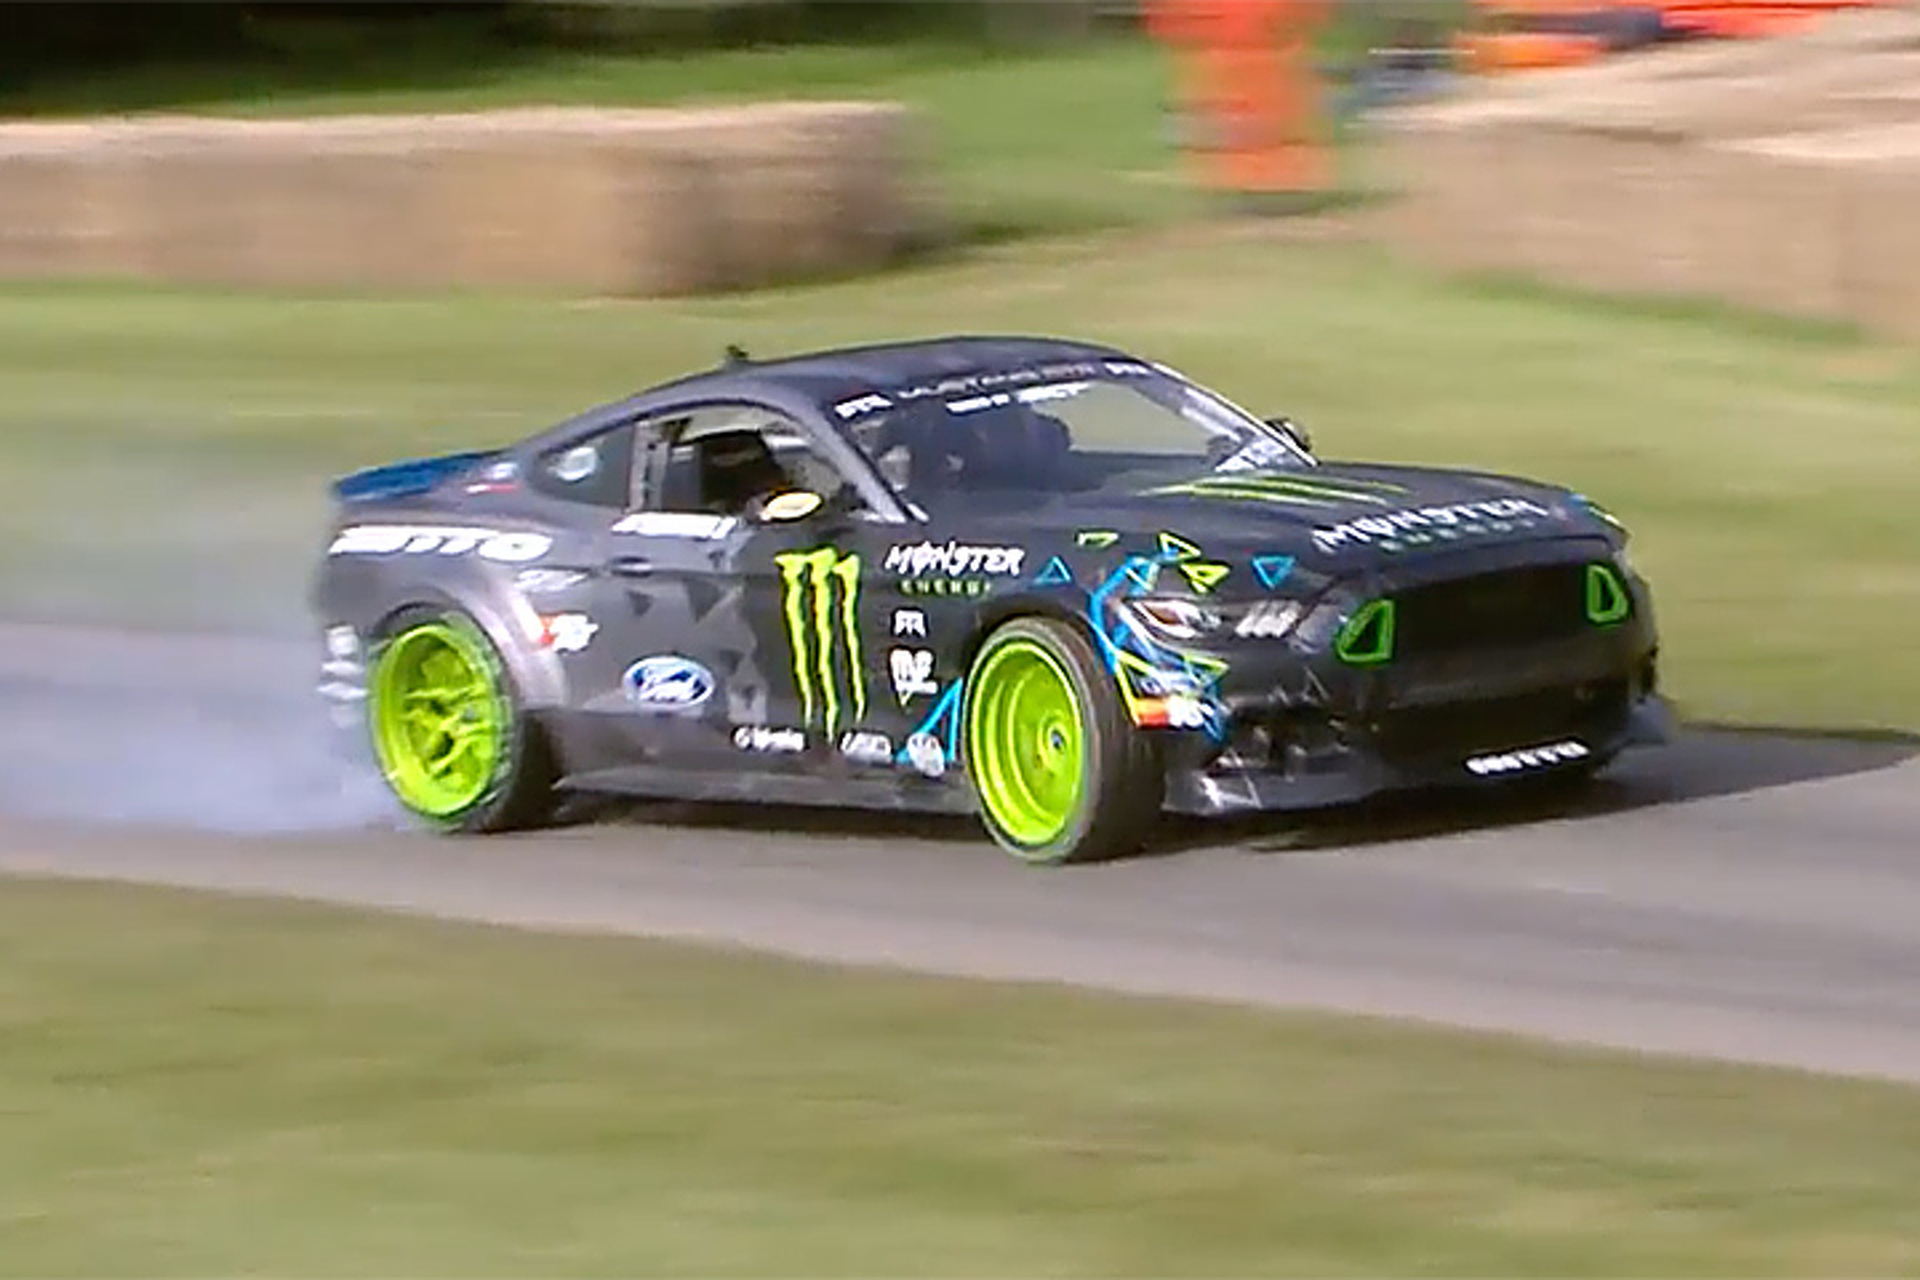 Watch Vaughn Gittin's Ford Mustang RTR Get Very Sideways at Goodwood